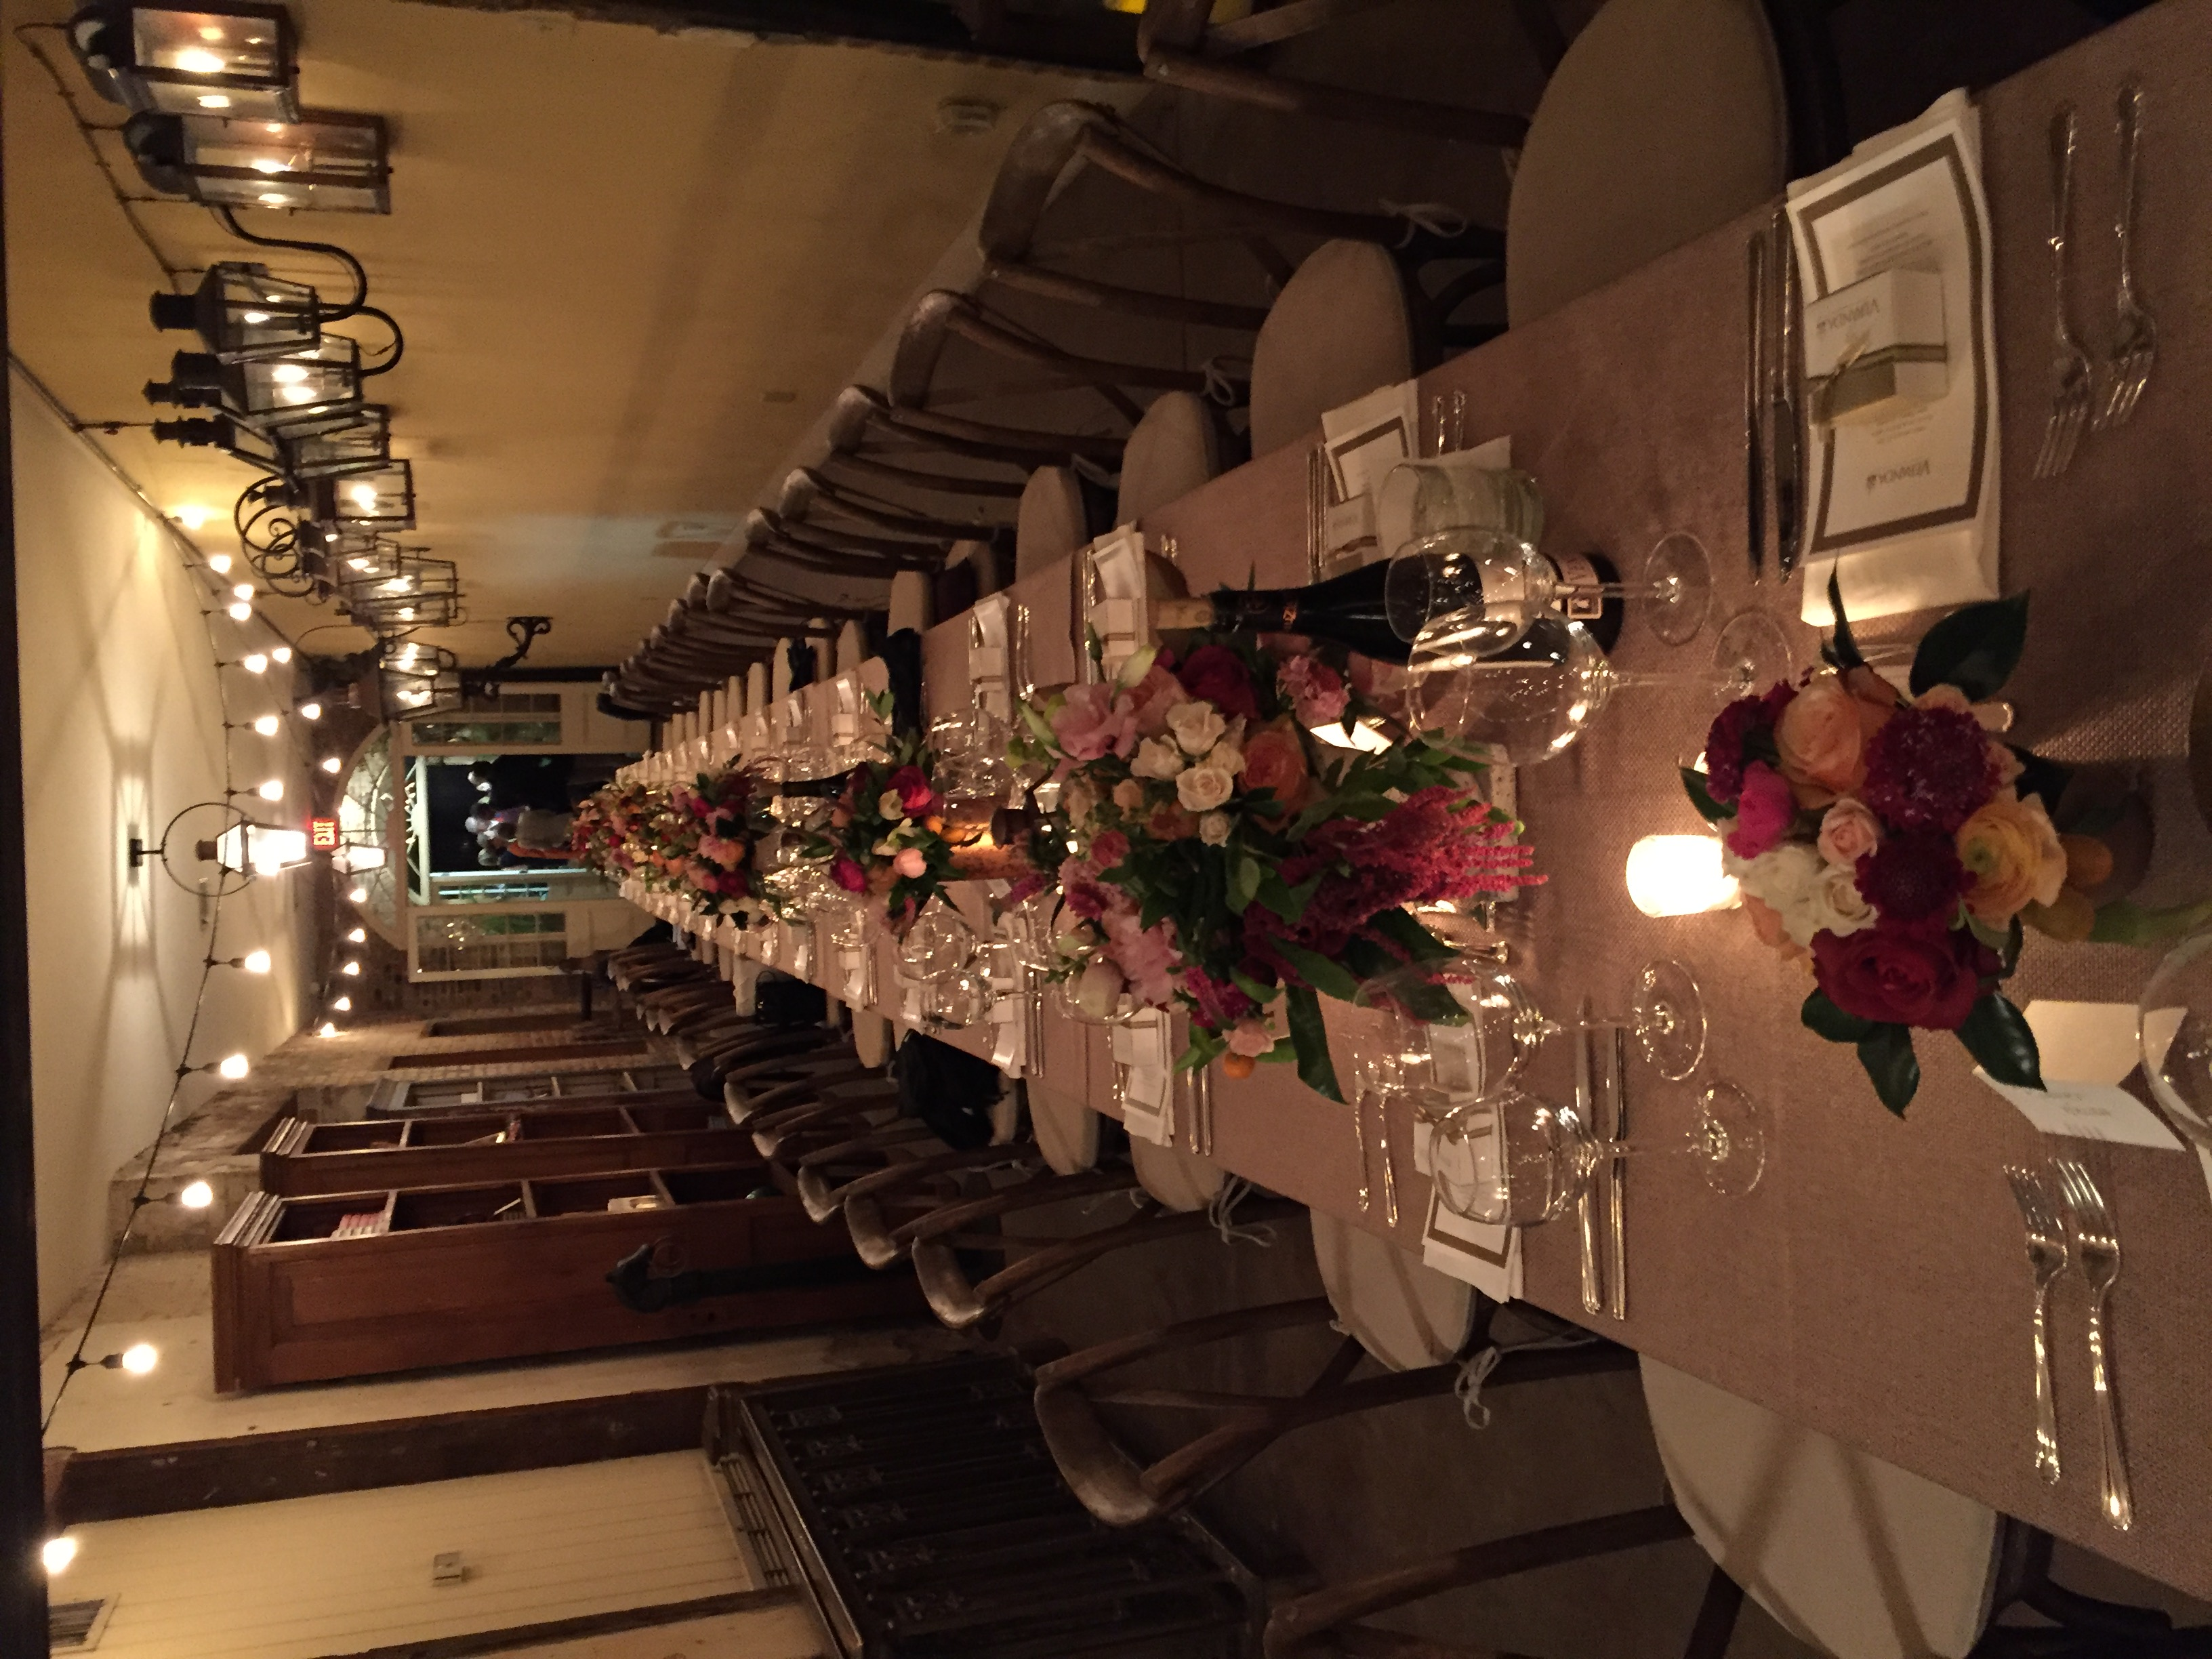 The table is set for dinner at Bevolo Gas & Electric Lights.